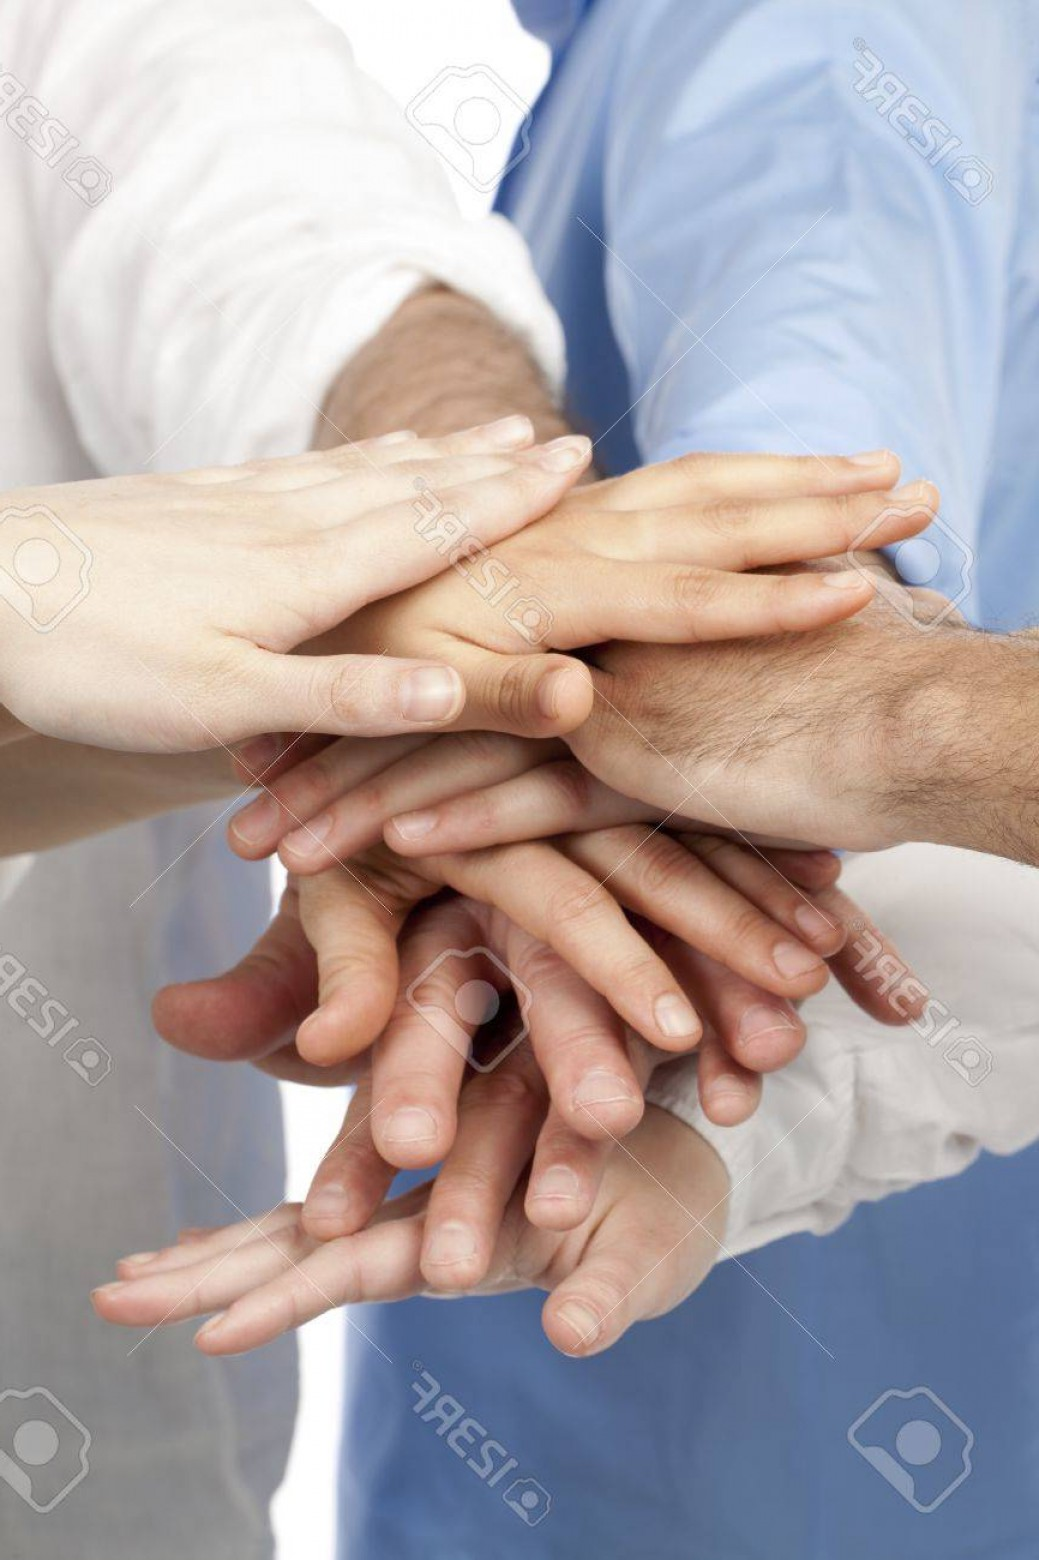 Vector Group Of Hands Overlapped: Photoclose Up Image Of Group Of Business People Overlapping Hands